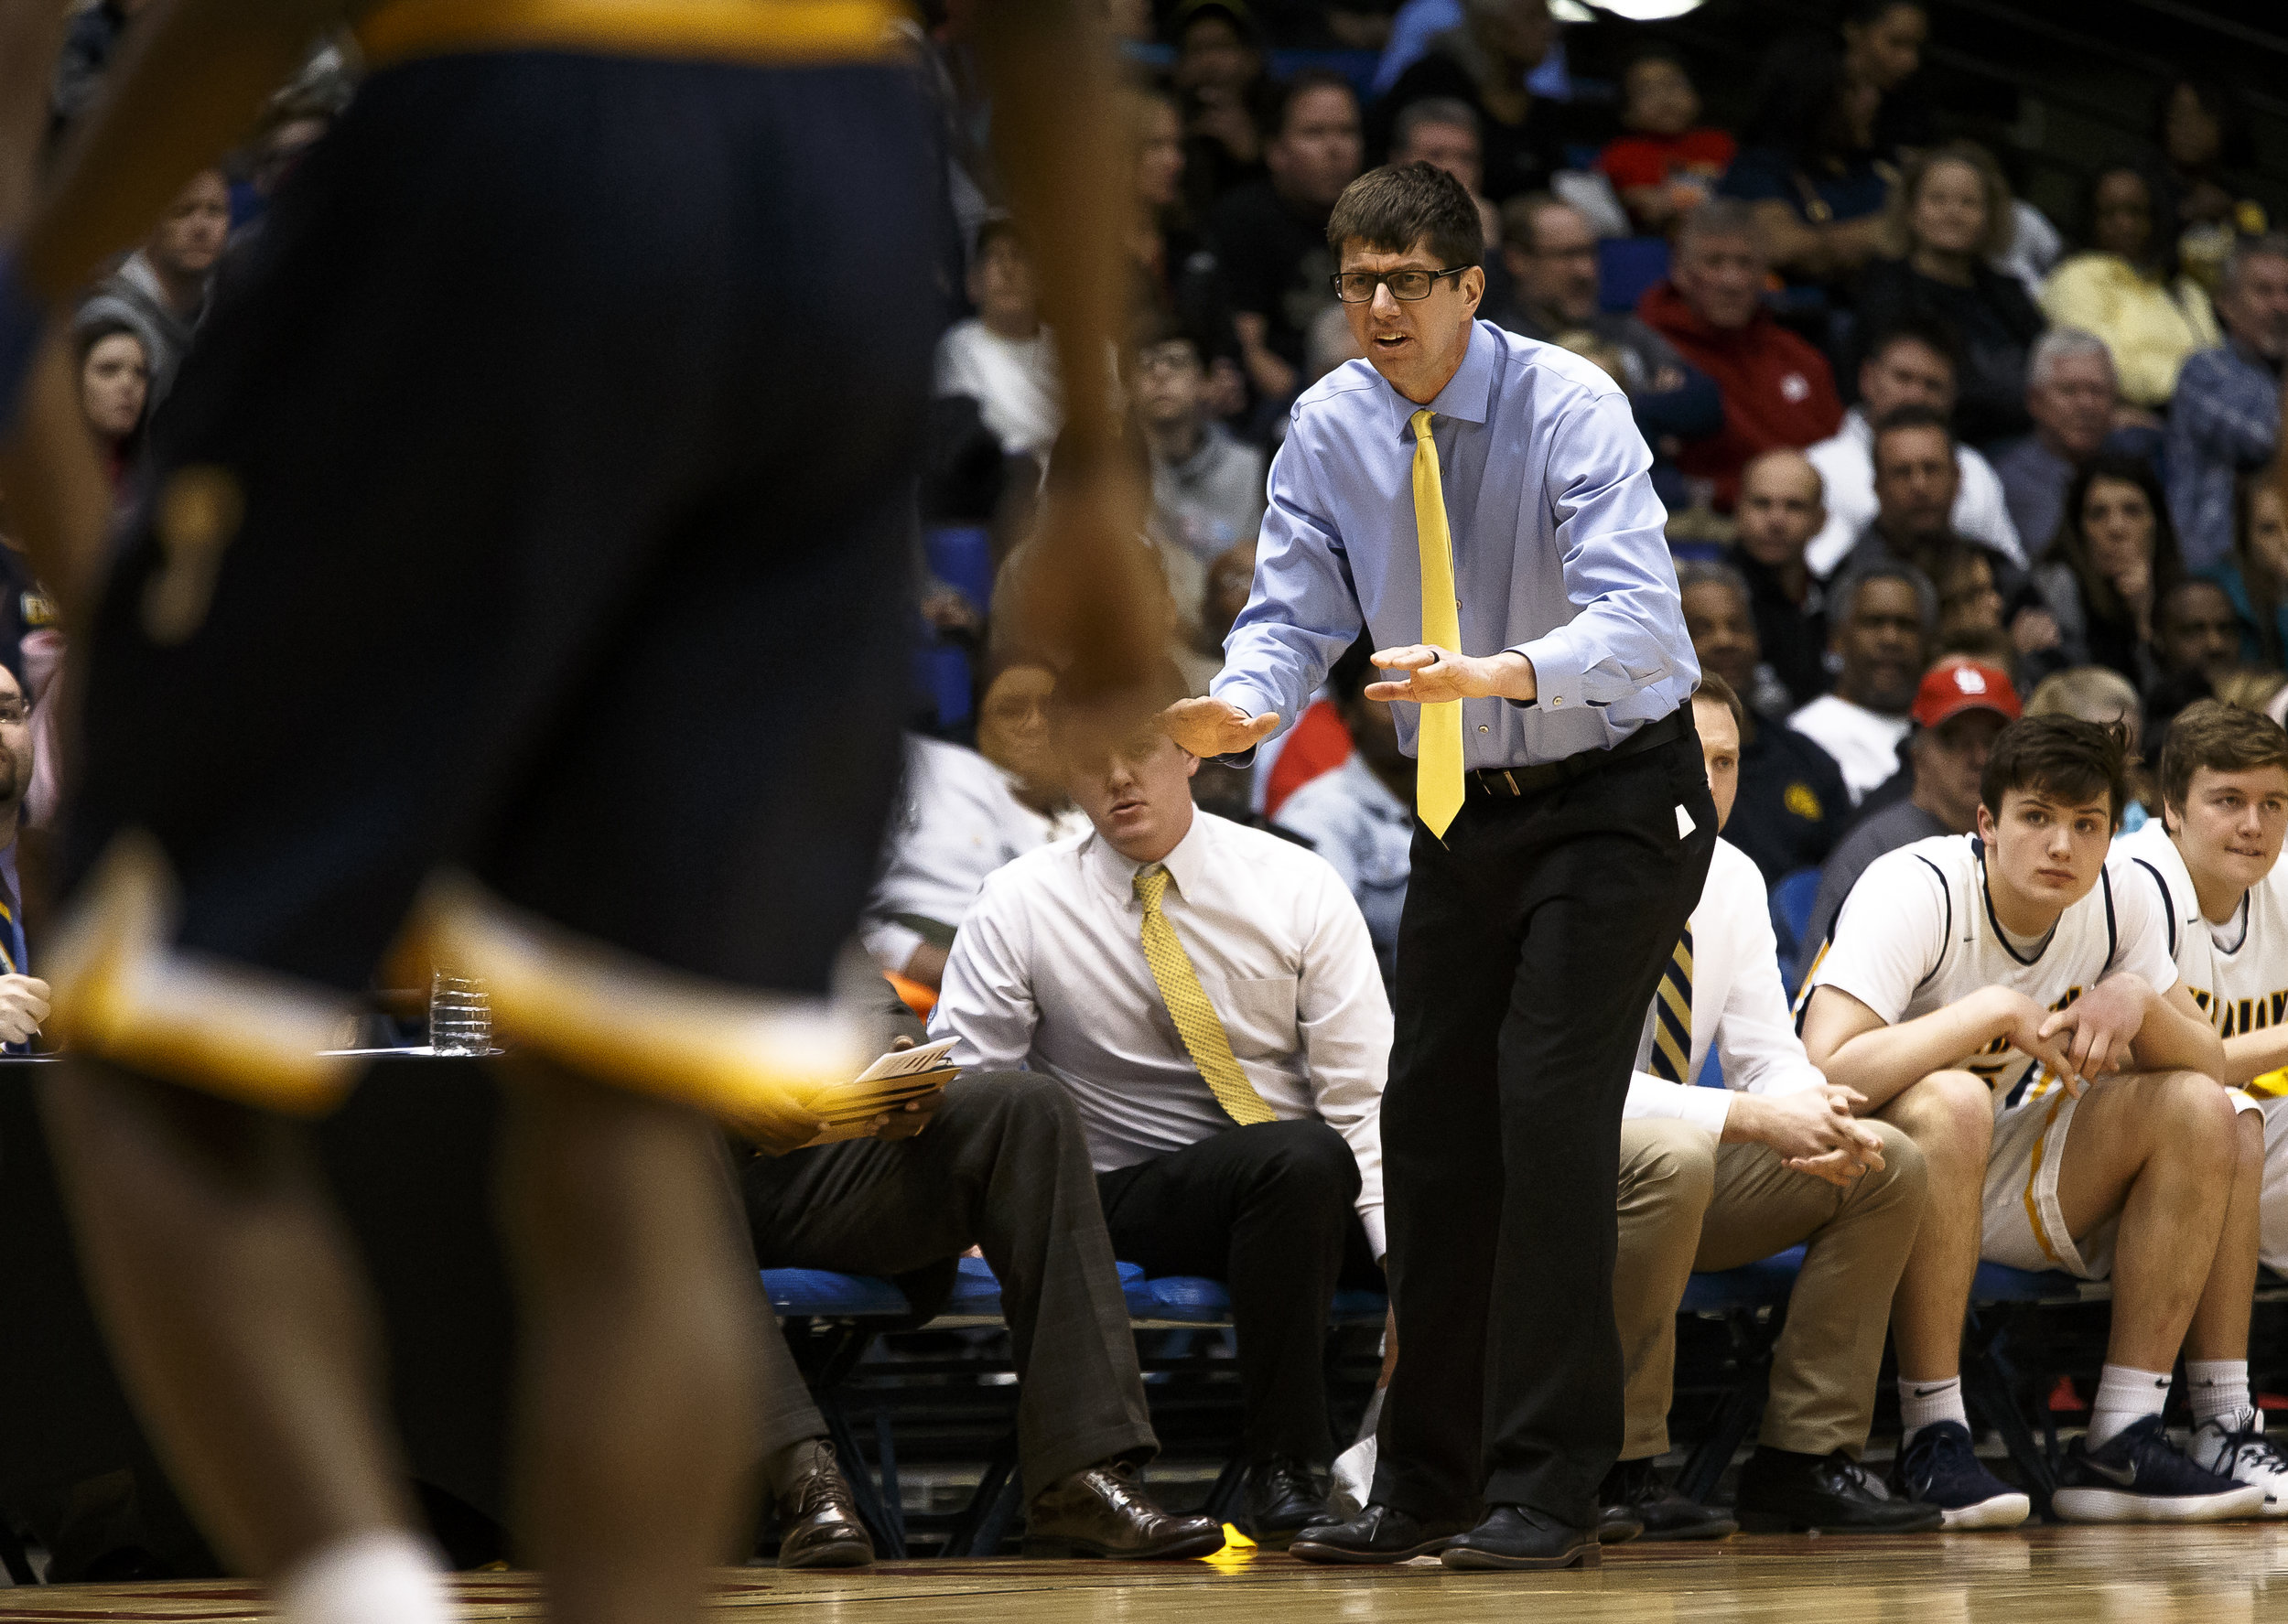 Marion boys basketball head coach Gus Gillespie tires to get his team to settle in as they take on Southeast in the second half during the Class 3A Springfield Supersectional at the Bank of Springfield Center, Tuesday, March 13, 2018, in Springfield, Ill. [Justin L. Fowler/The State Journal-Register]